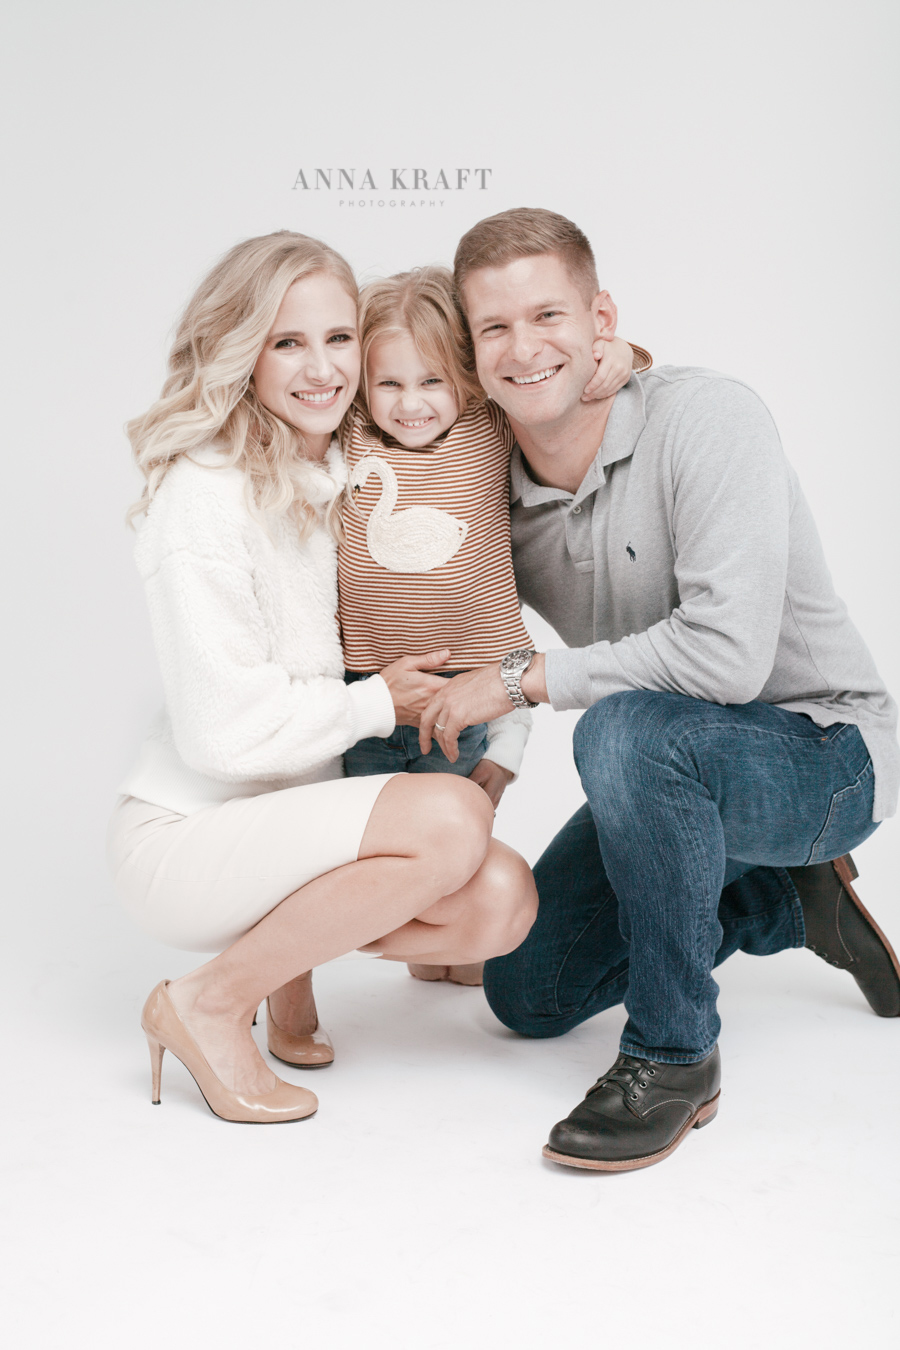 anna_kraft_photography_georgetown_square_studio_family_portrait_Christmas_walters_pictures-17.jpg